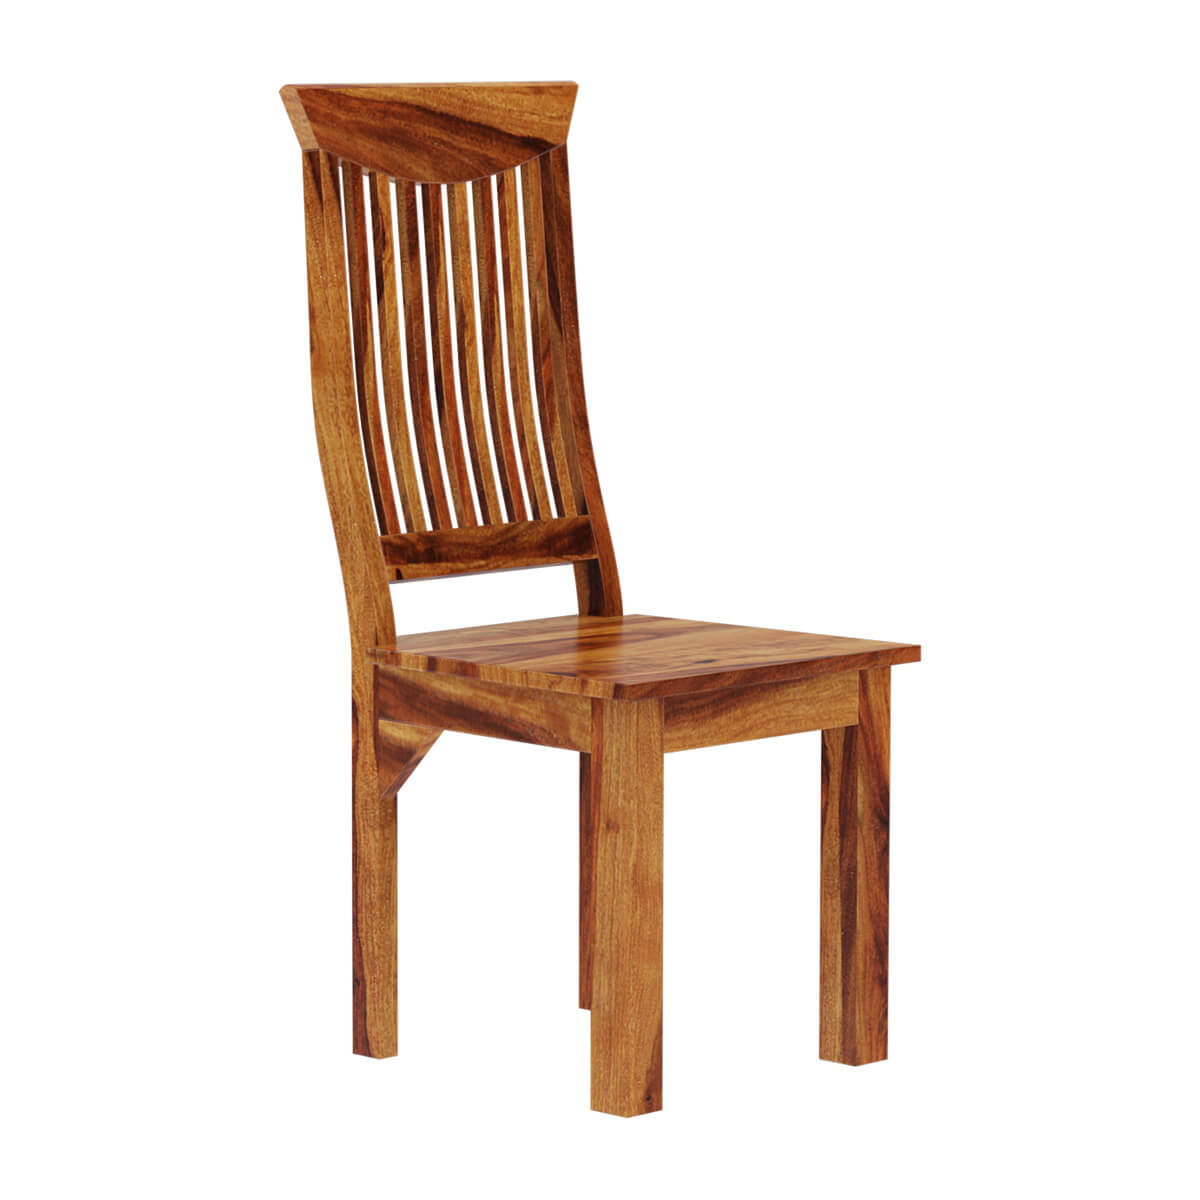 Admirable Idaho Modern Solid Wood Contemporary Wave Back Ergonomic Dining Chair Dailytribune Chair Design For Home Dailytribuneorg